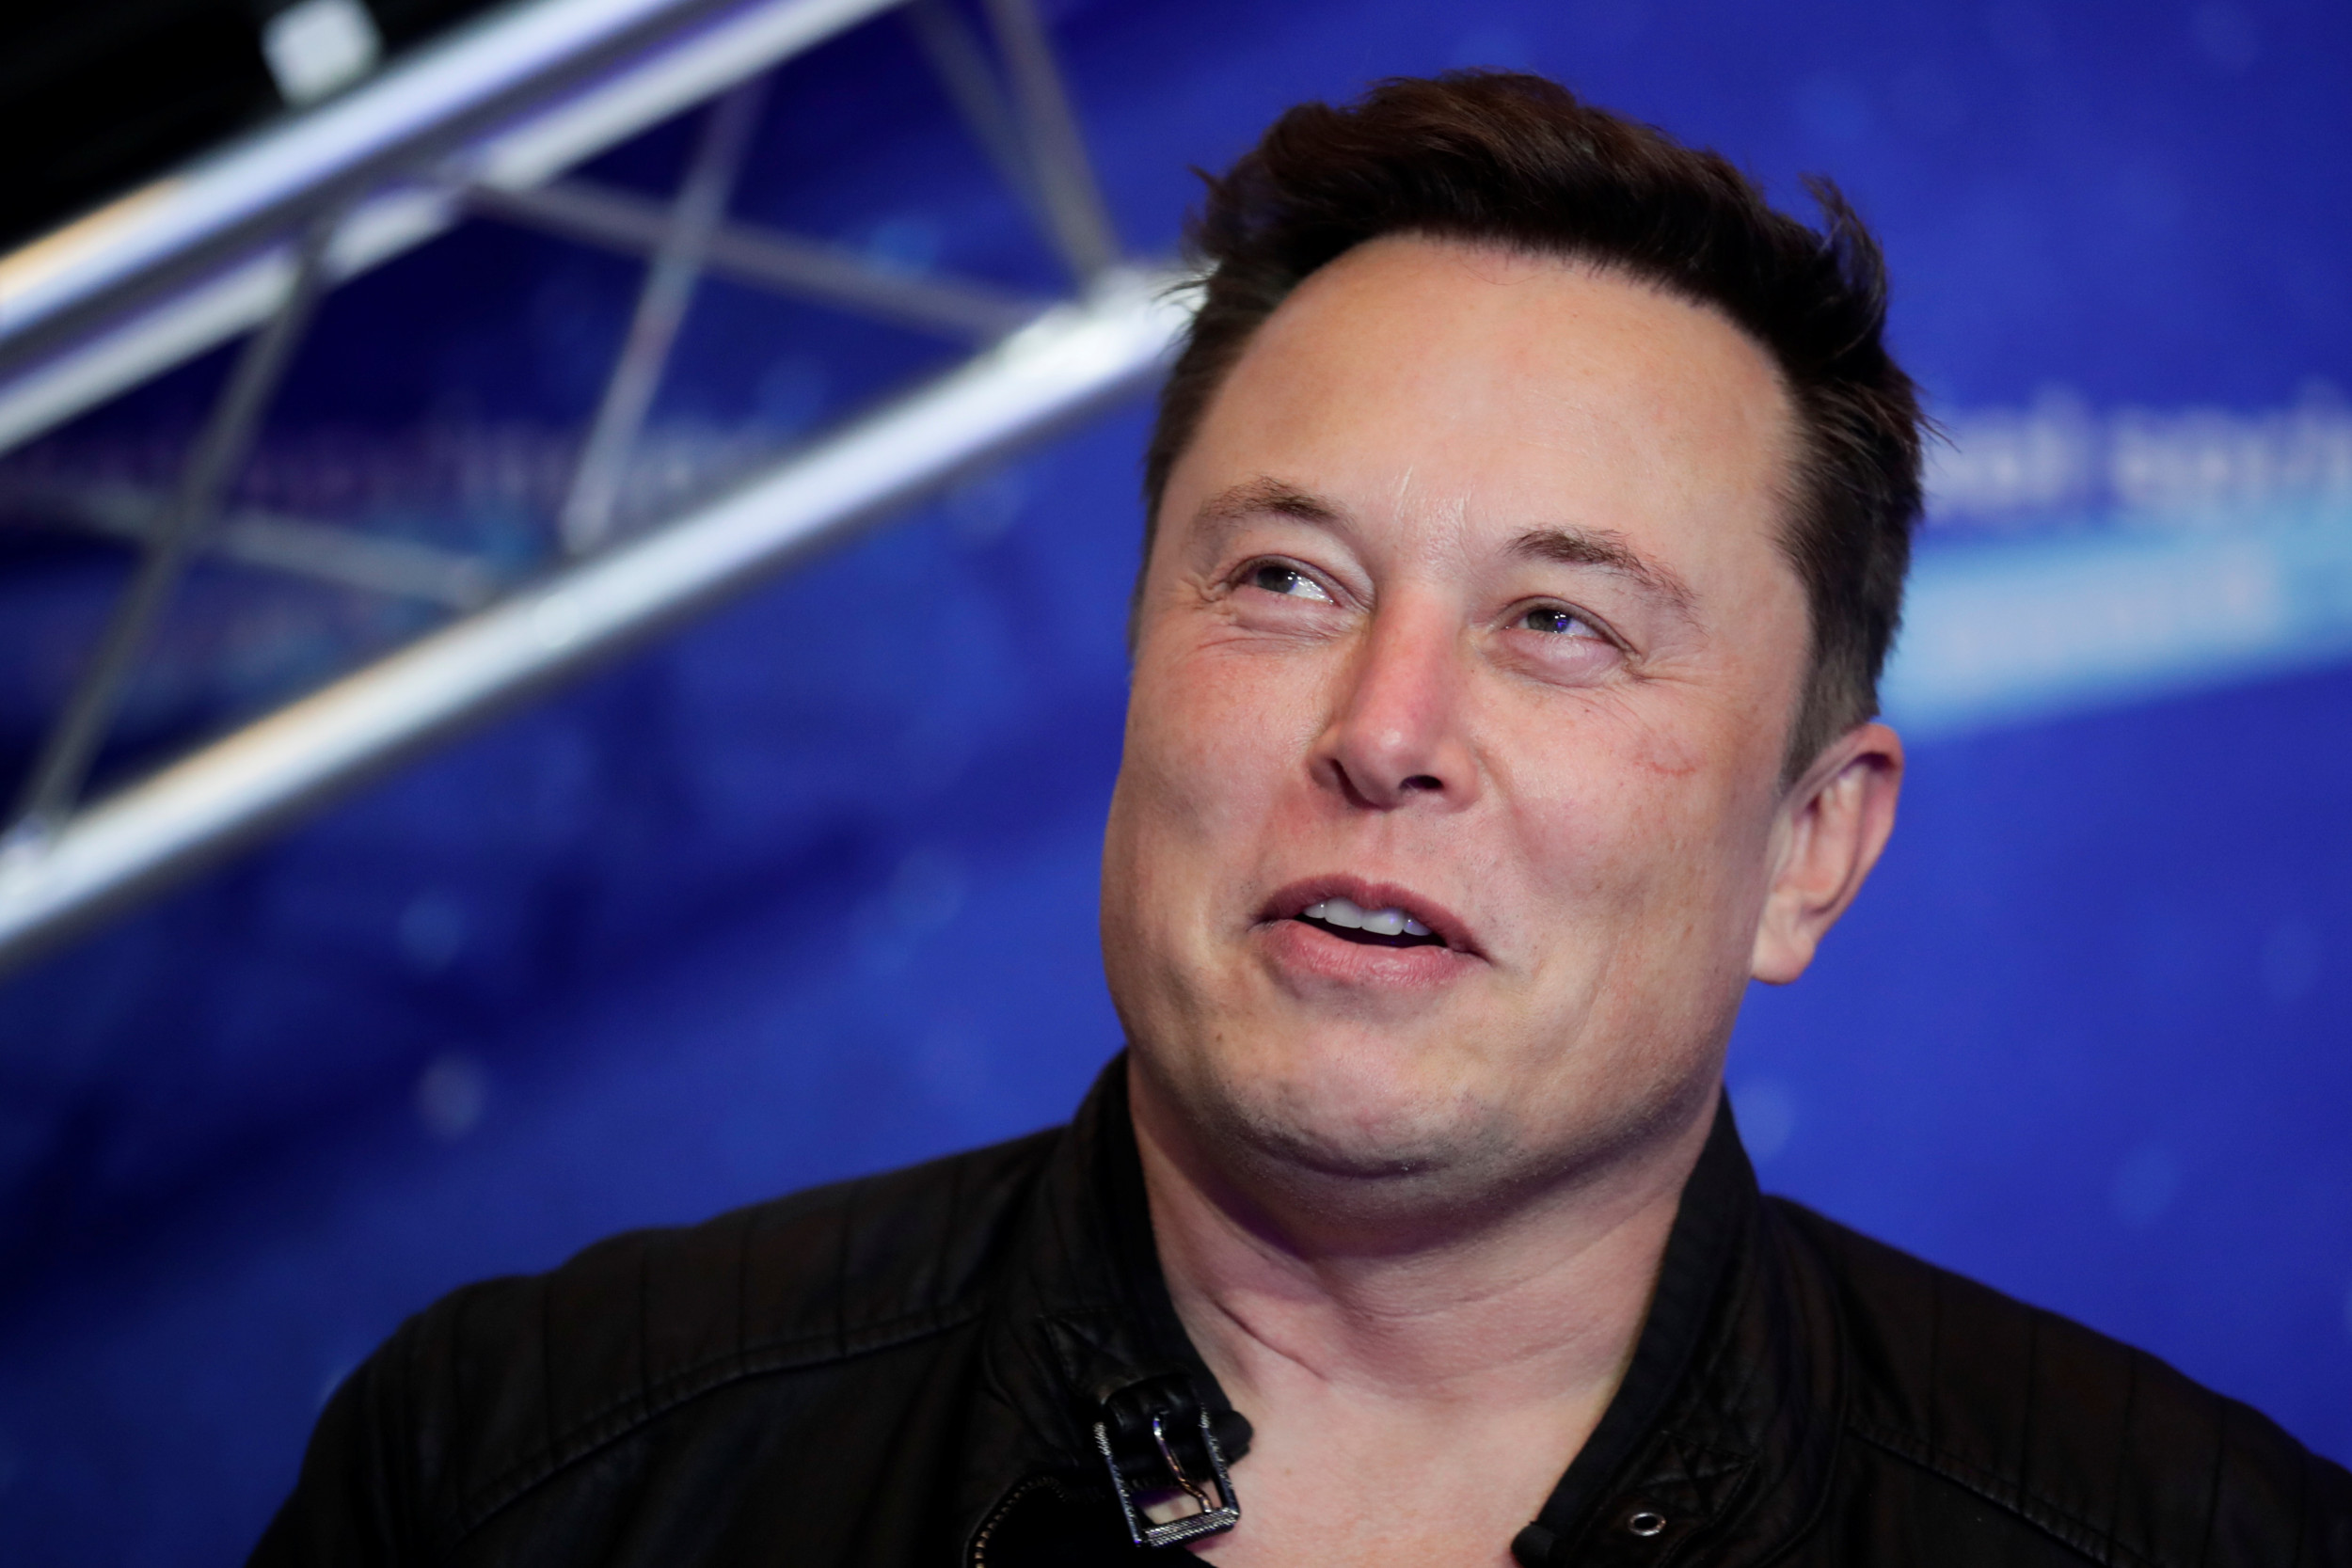 How Bitcoin Uses Fossil Fuels As Elon Musk Says Tesla No ...